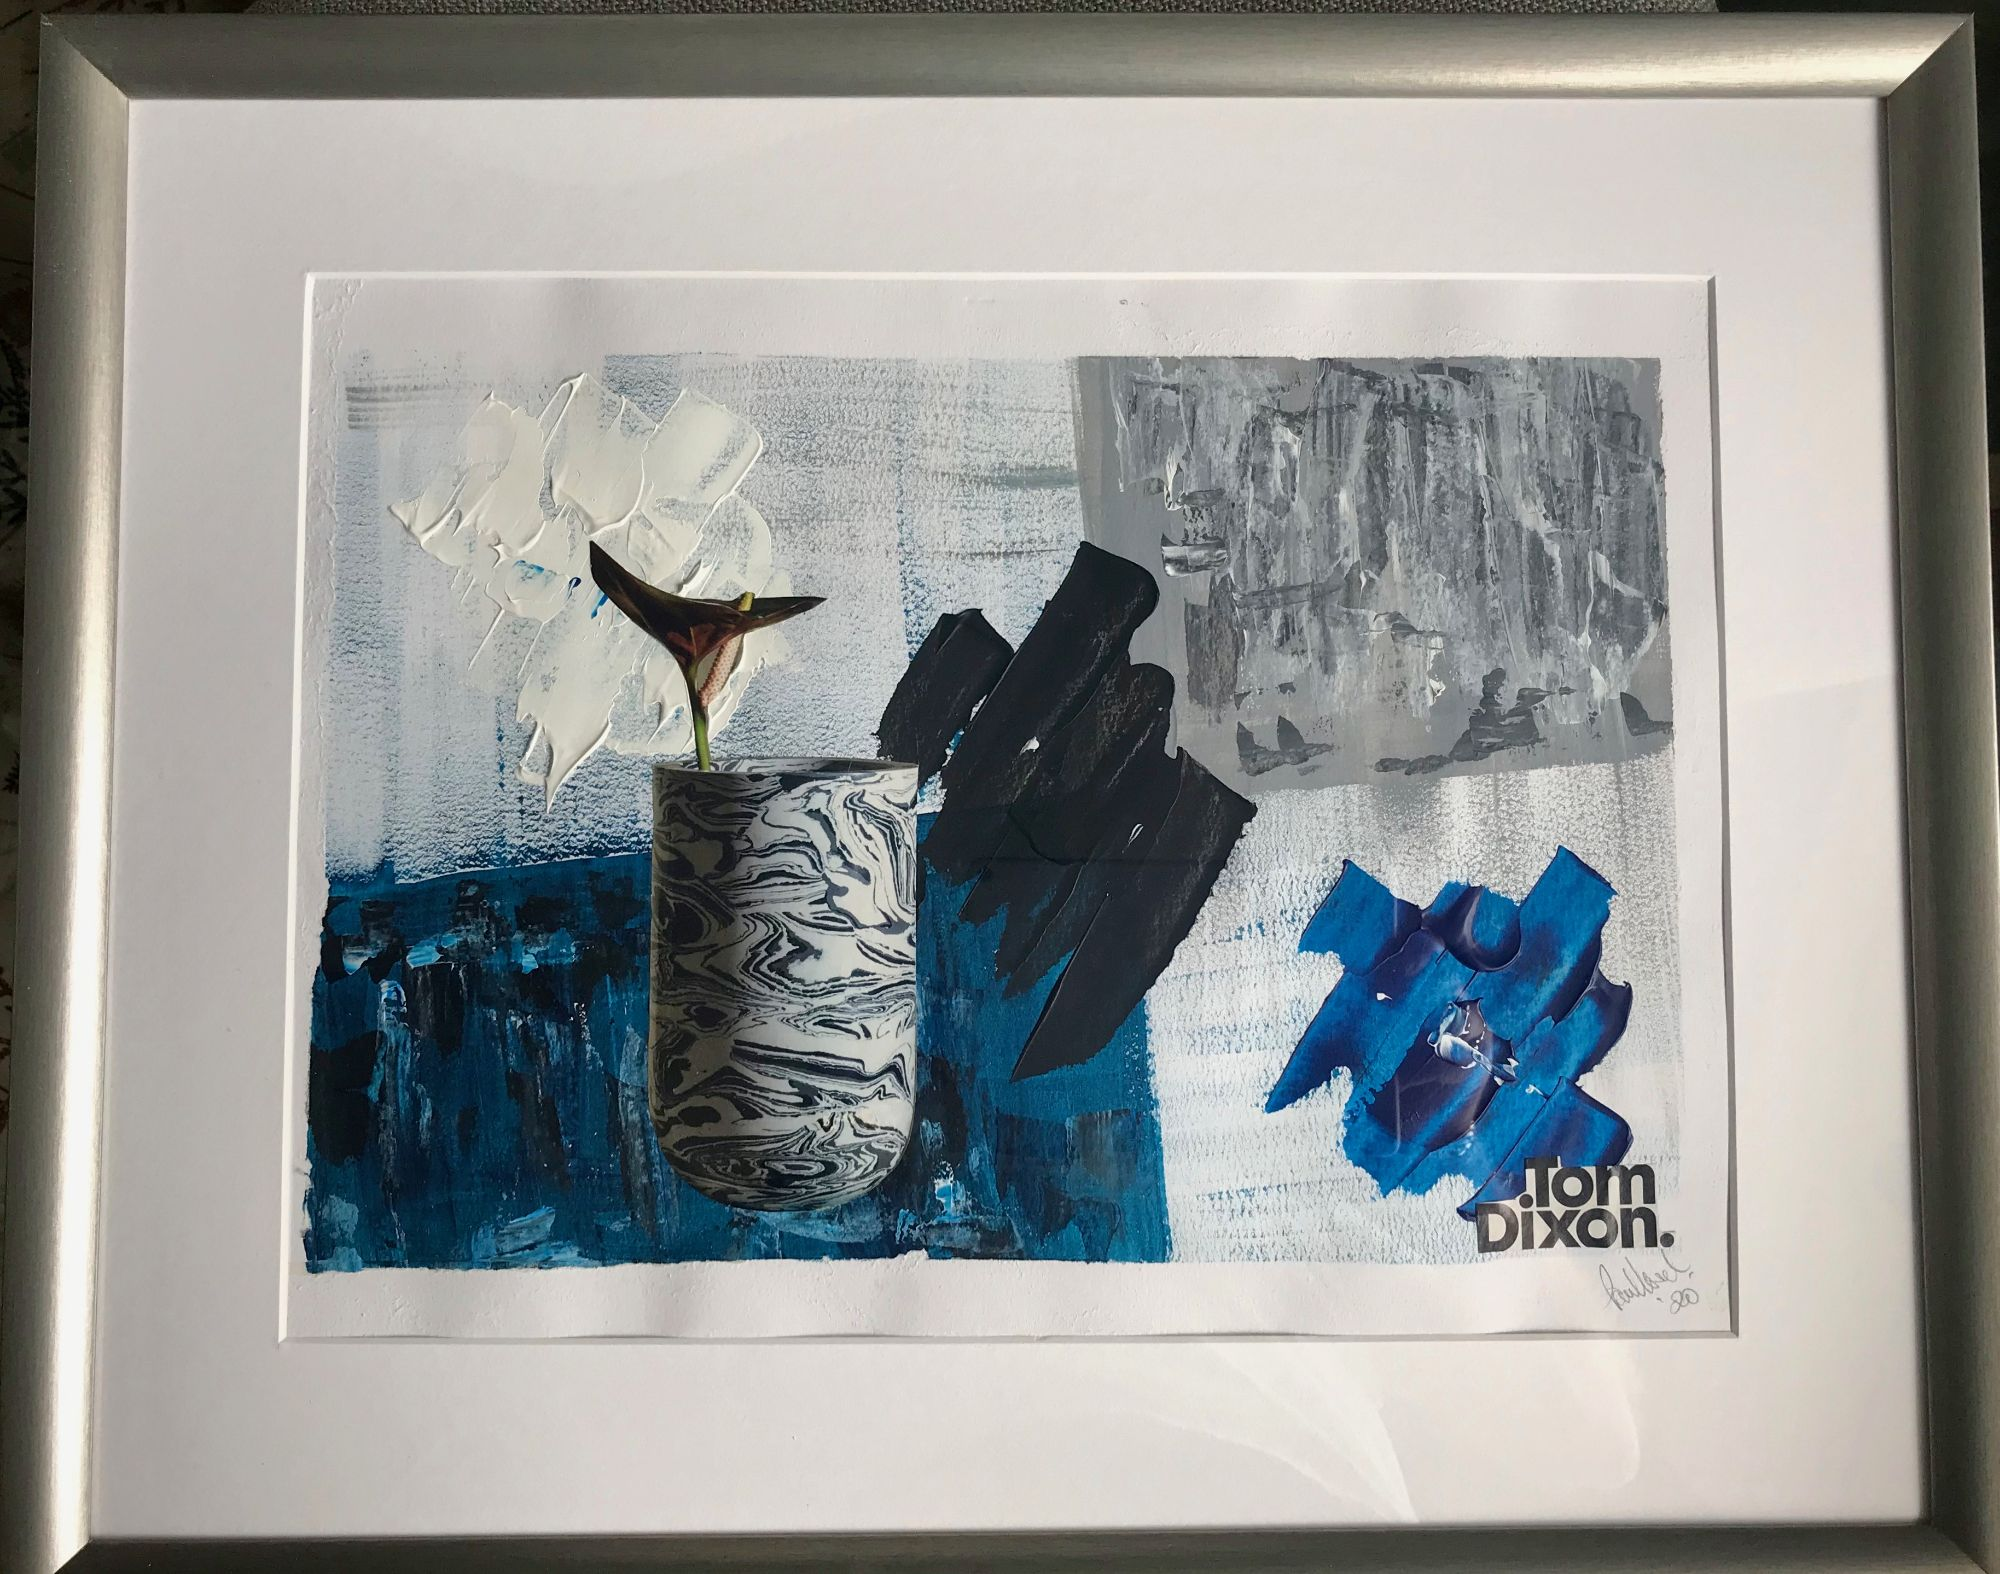 Tribute to Tom Dixon   ________________________________ mixed media  (53cm x 43cm s 2cm)           £50